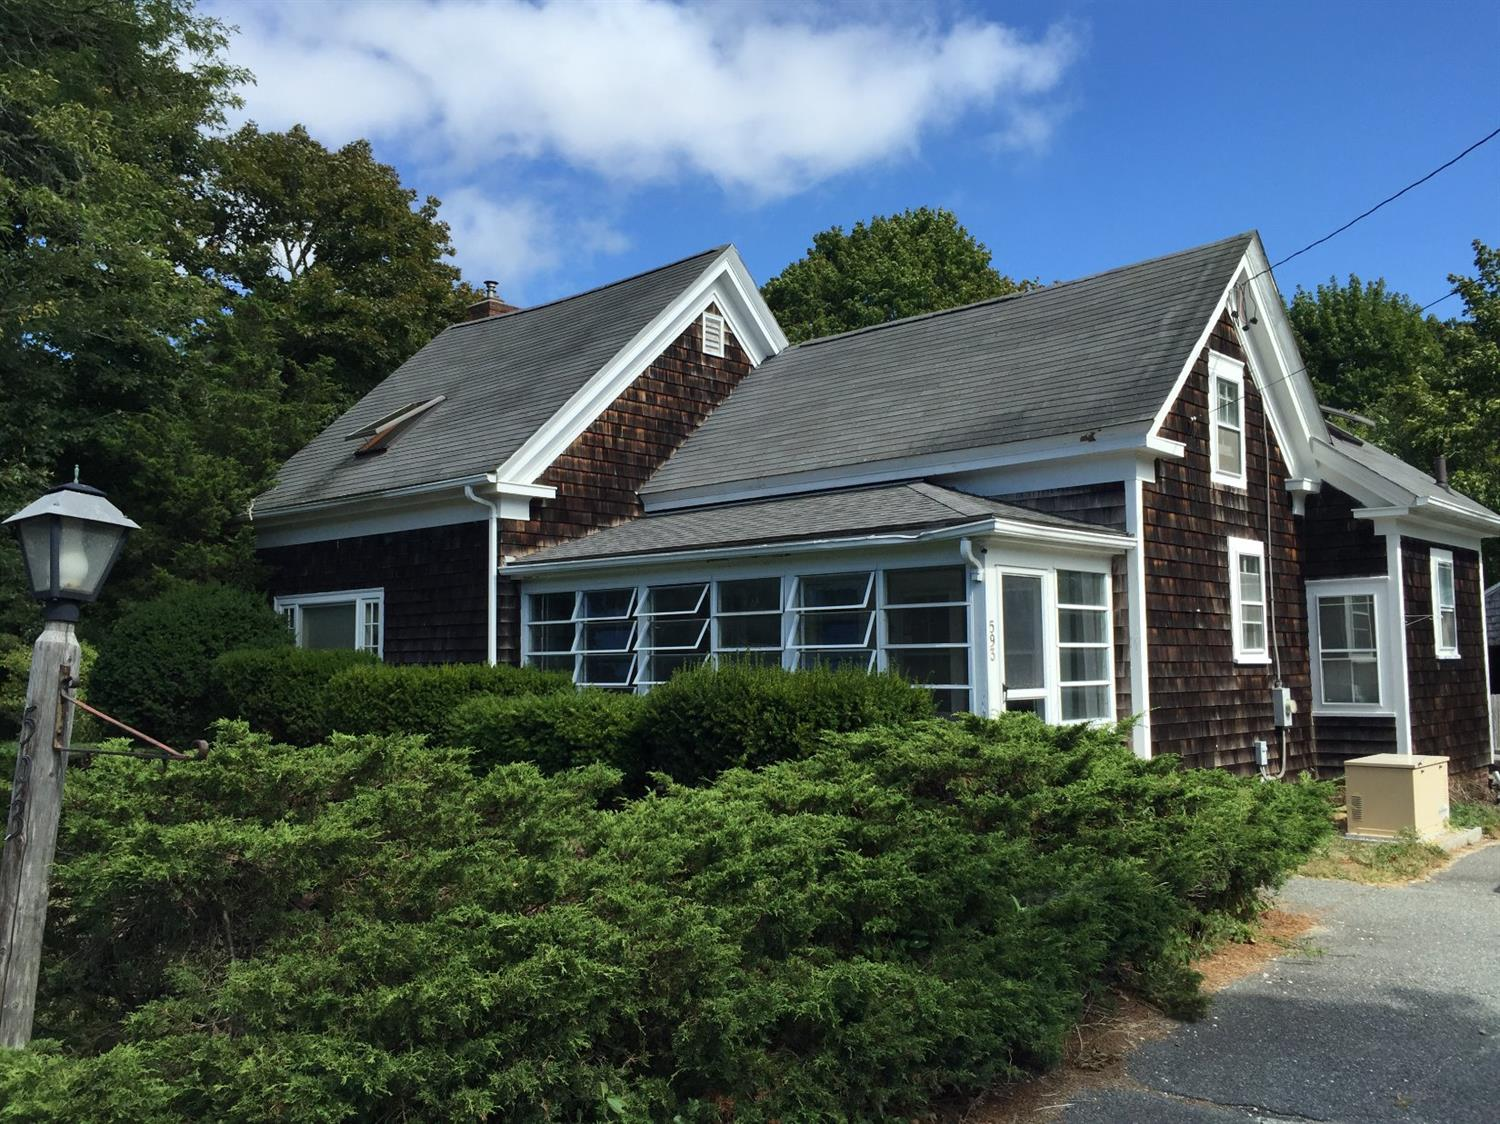 Single Family Home for Sale at 593 Depot Street Harwich, Massachusetts 02645 United States